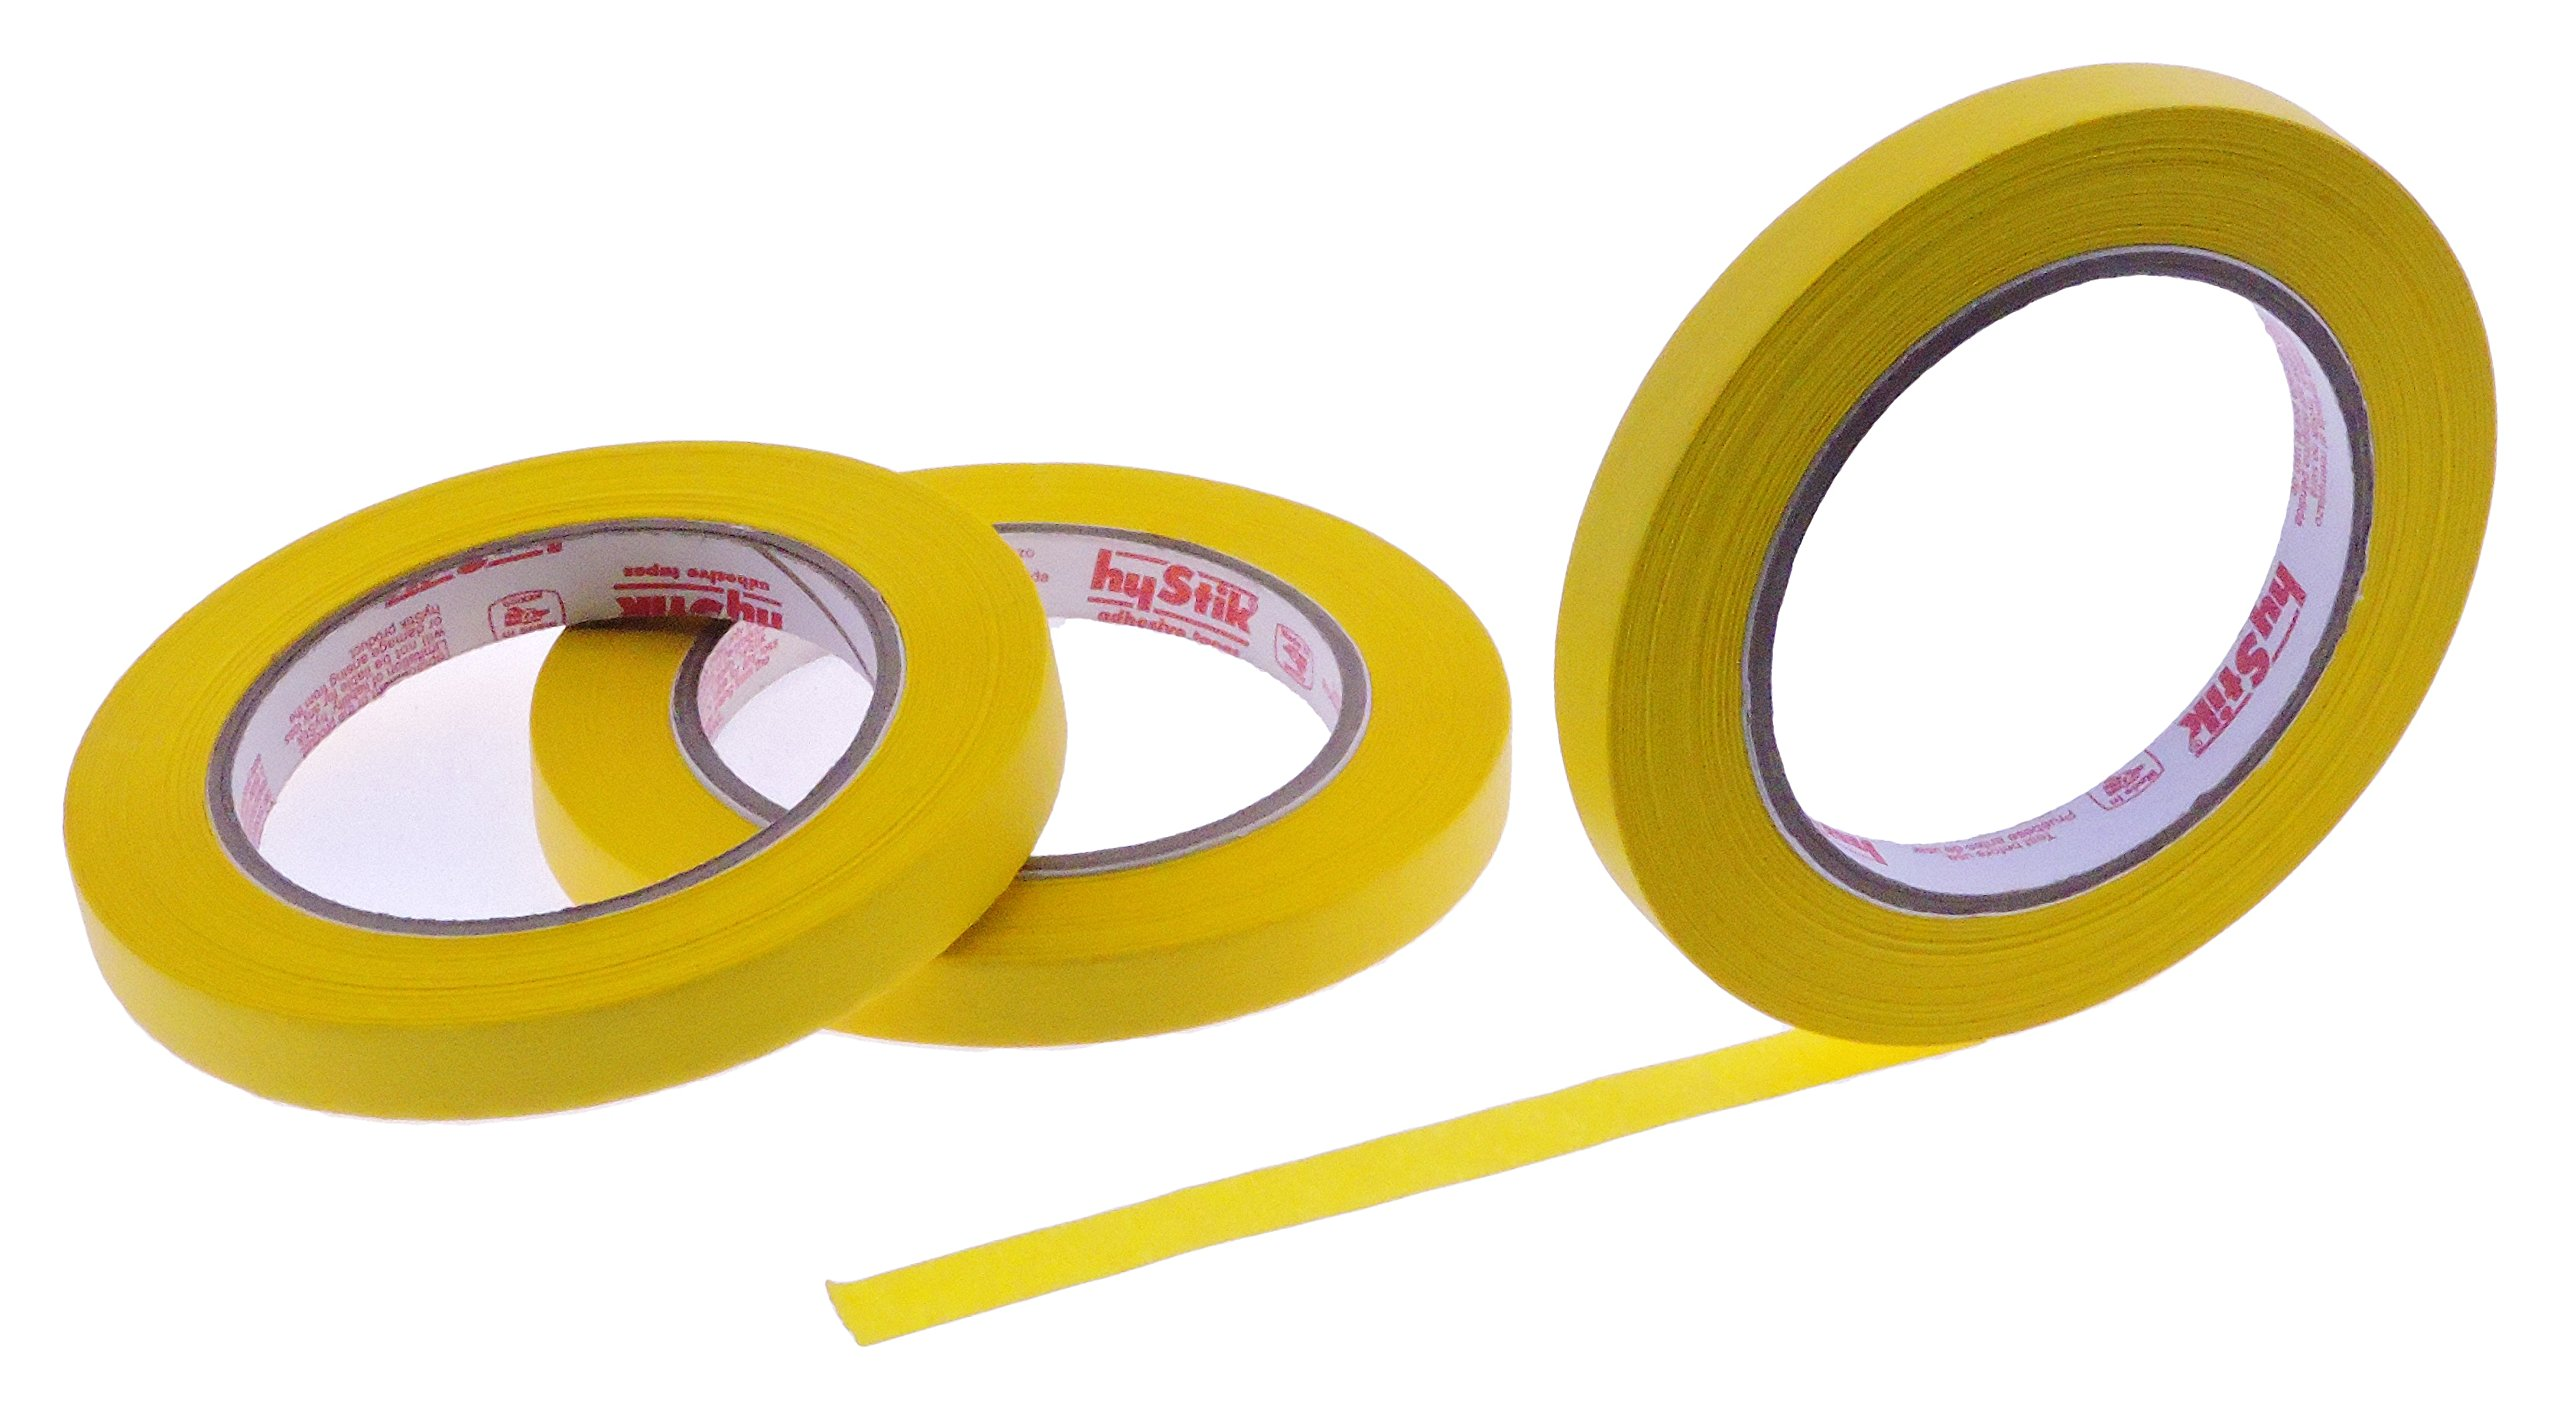 3pk 1/2'' in x 60yd Lemon Yellow Masking Tape Extra Sticky PRO Grade High Stick Special Project Painters Tape Painting Trim Arts Crafts School Home Office 21 Days 12MM x 55M .5 inch Banana Sunshine